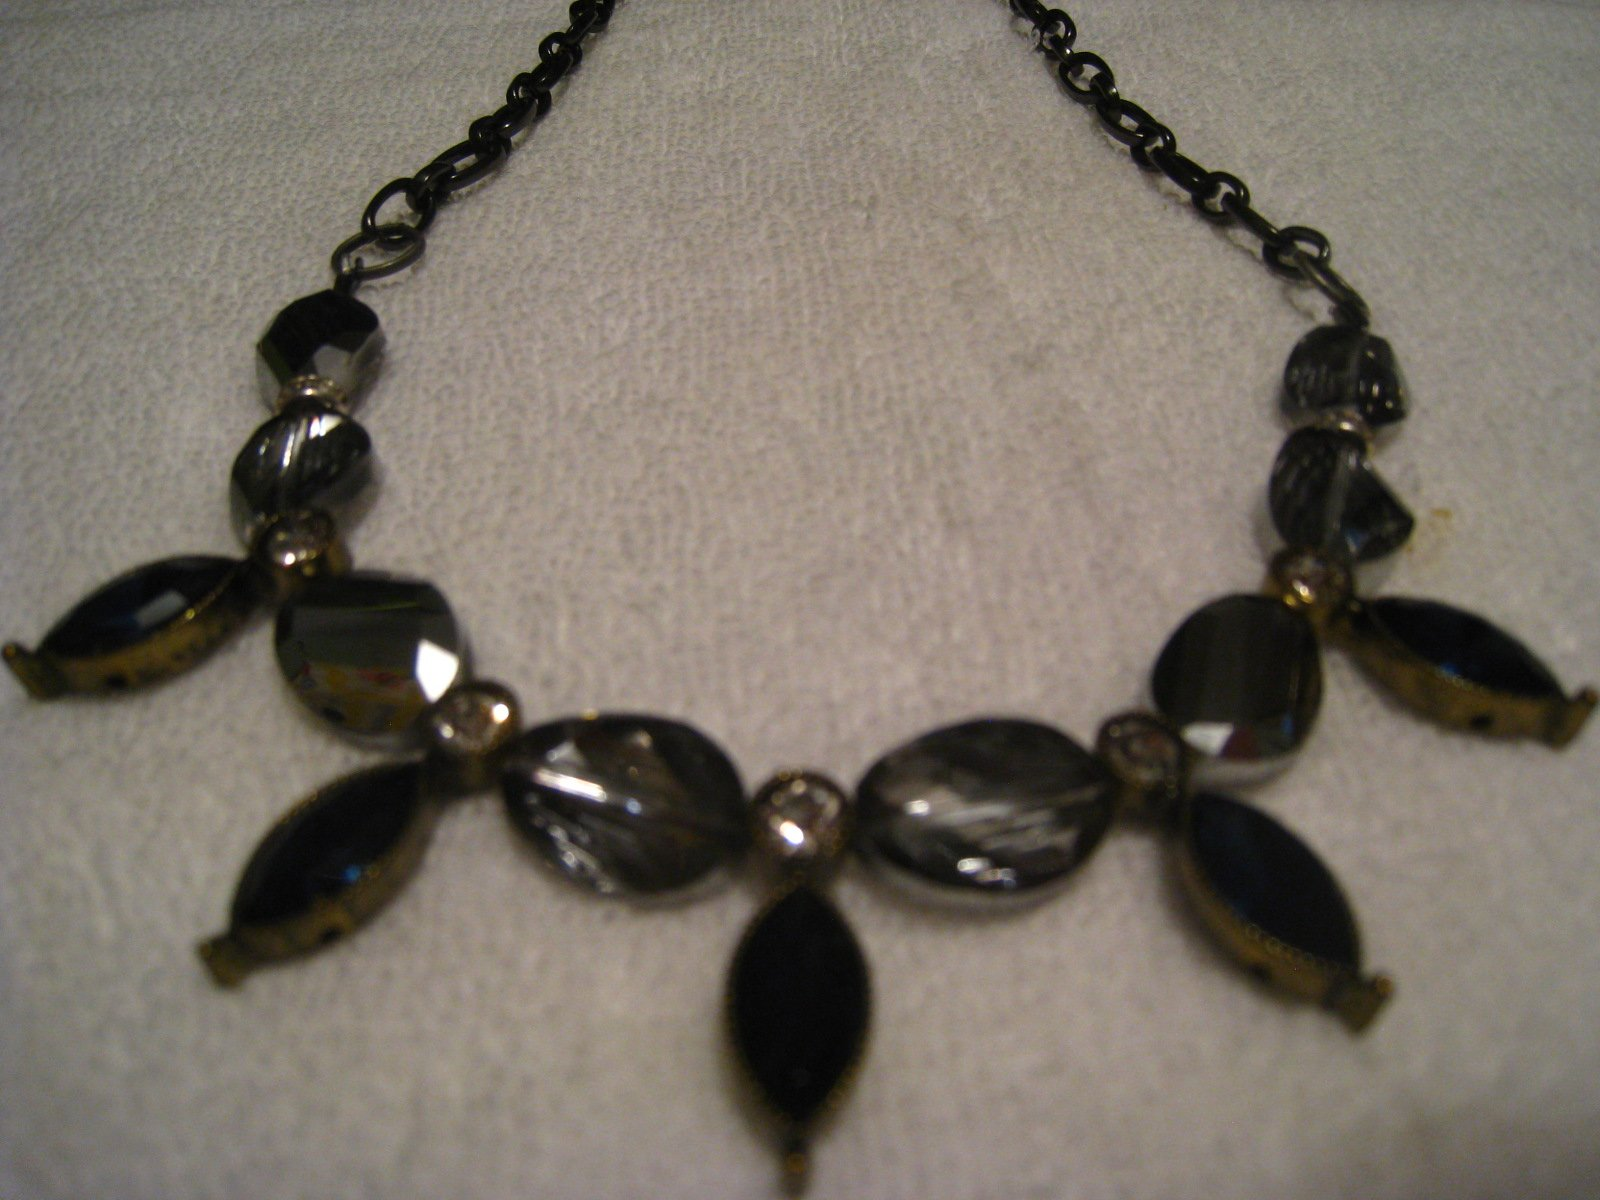 Necklace choker style with matching earrings